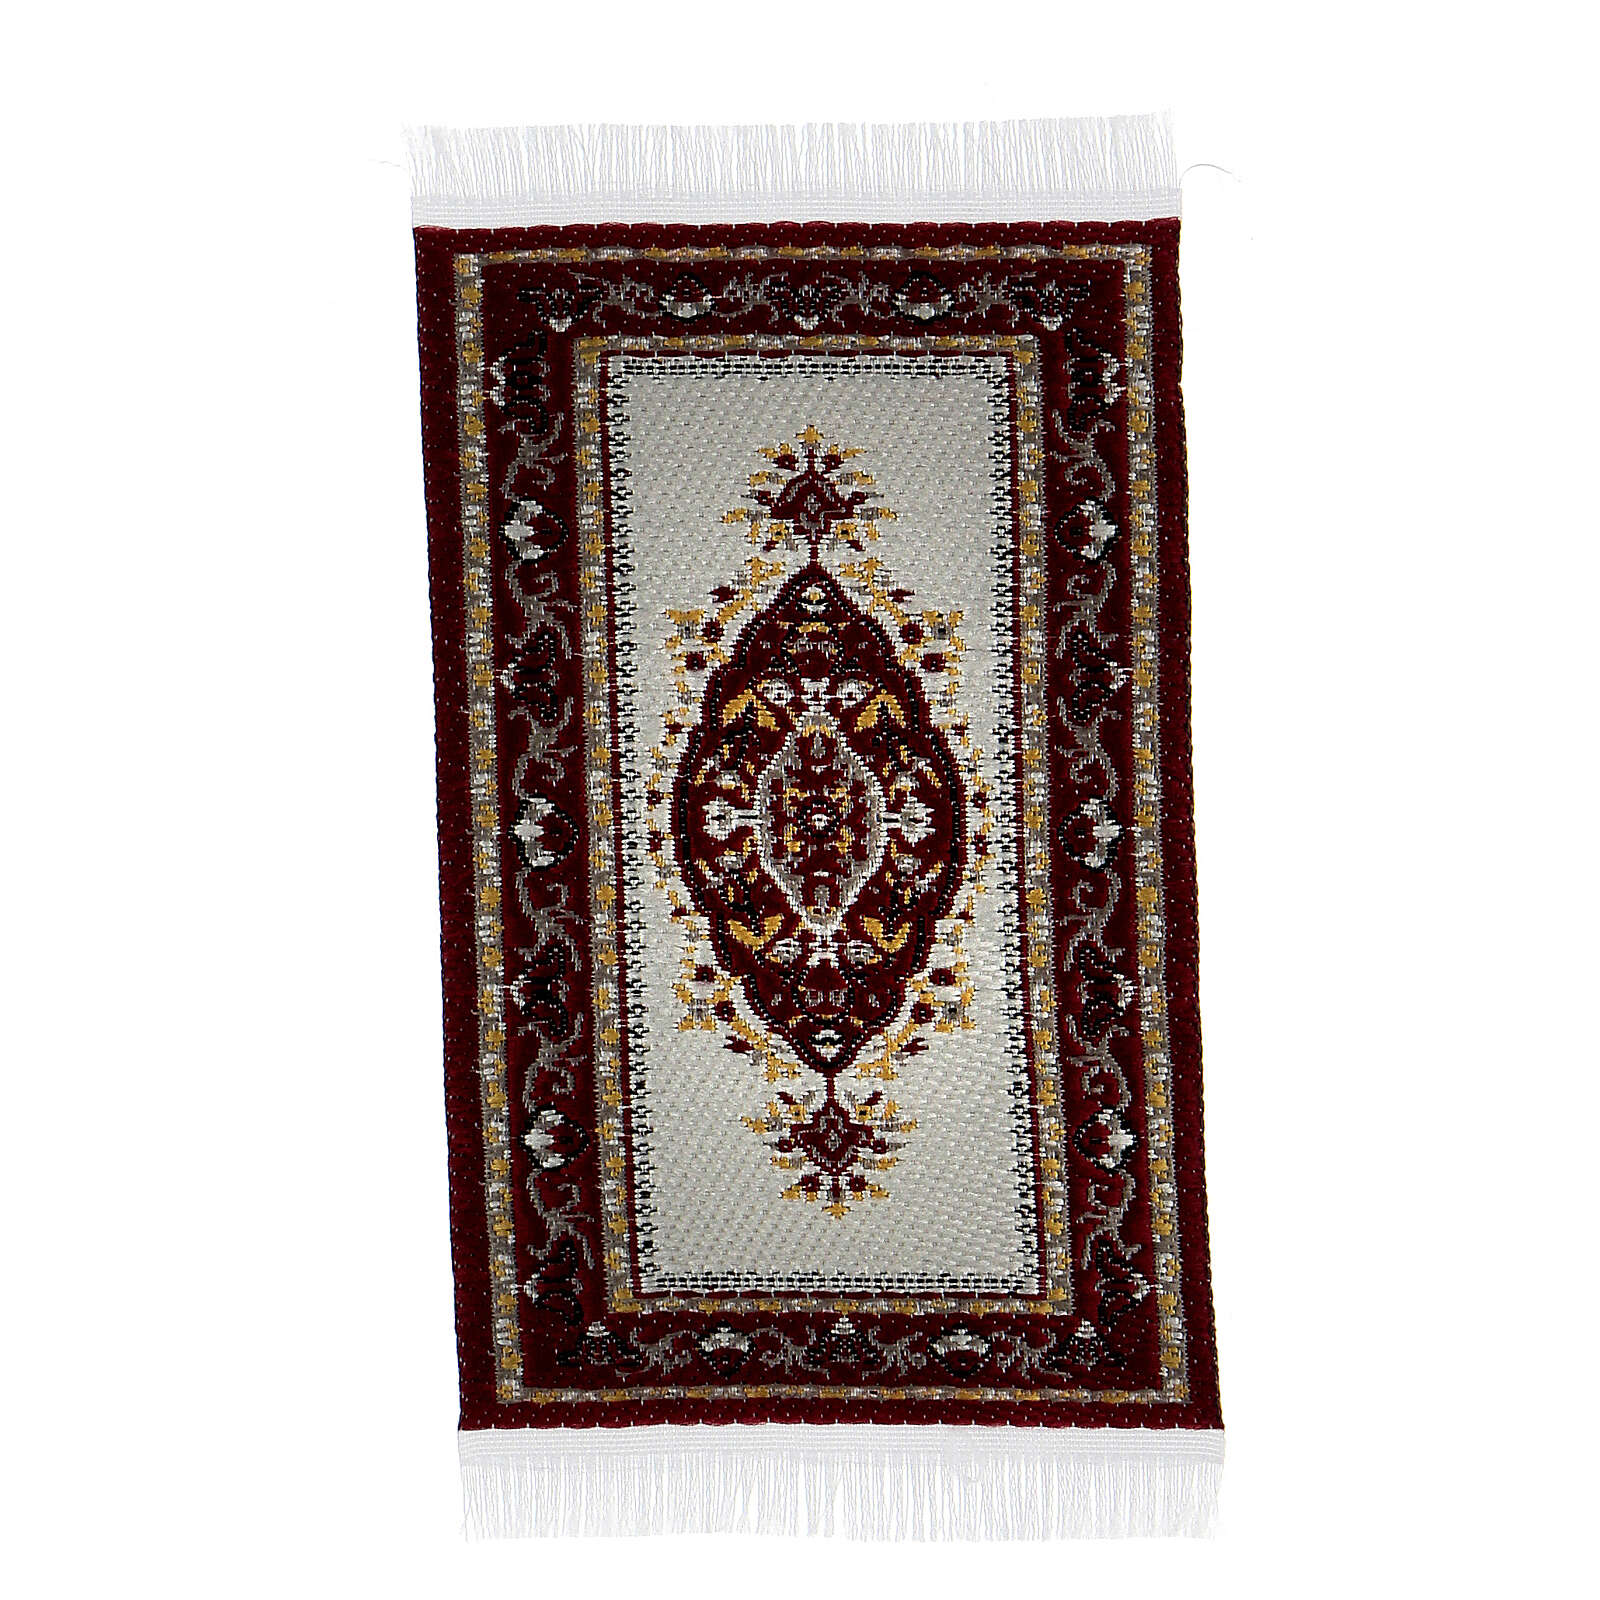 Decorated carpet 8x5 cm for Nativity Scene with 10-16 cm figurines 4